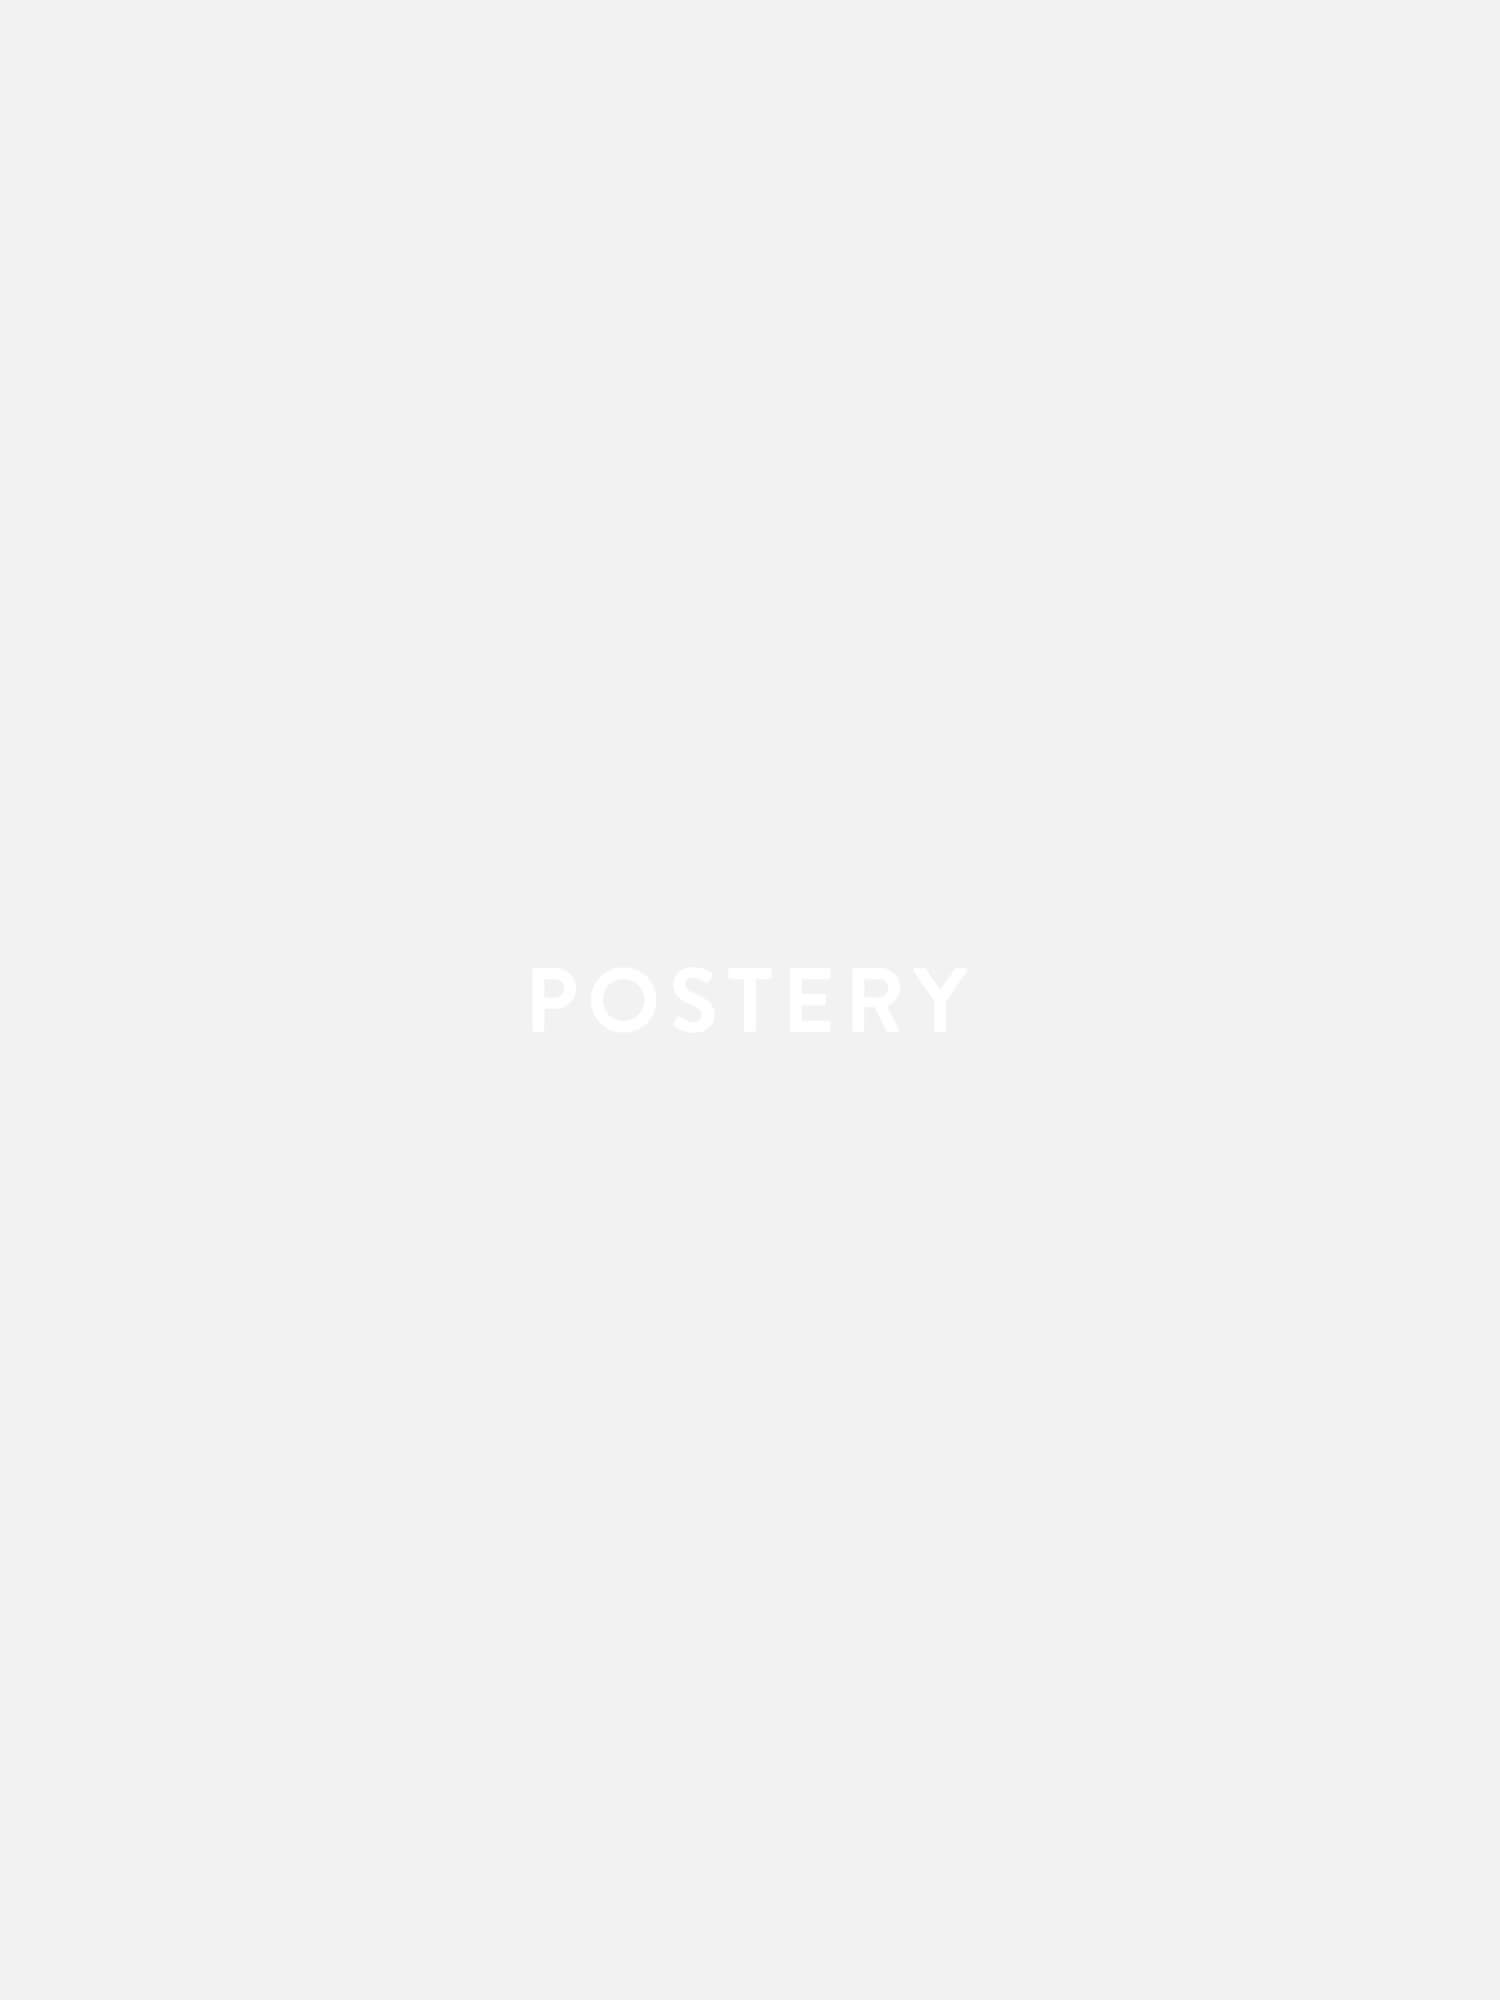 New York Directions Poster